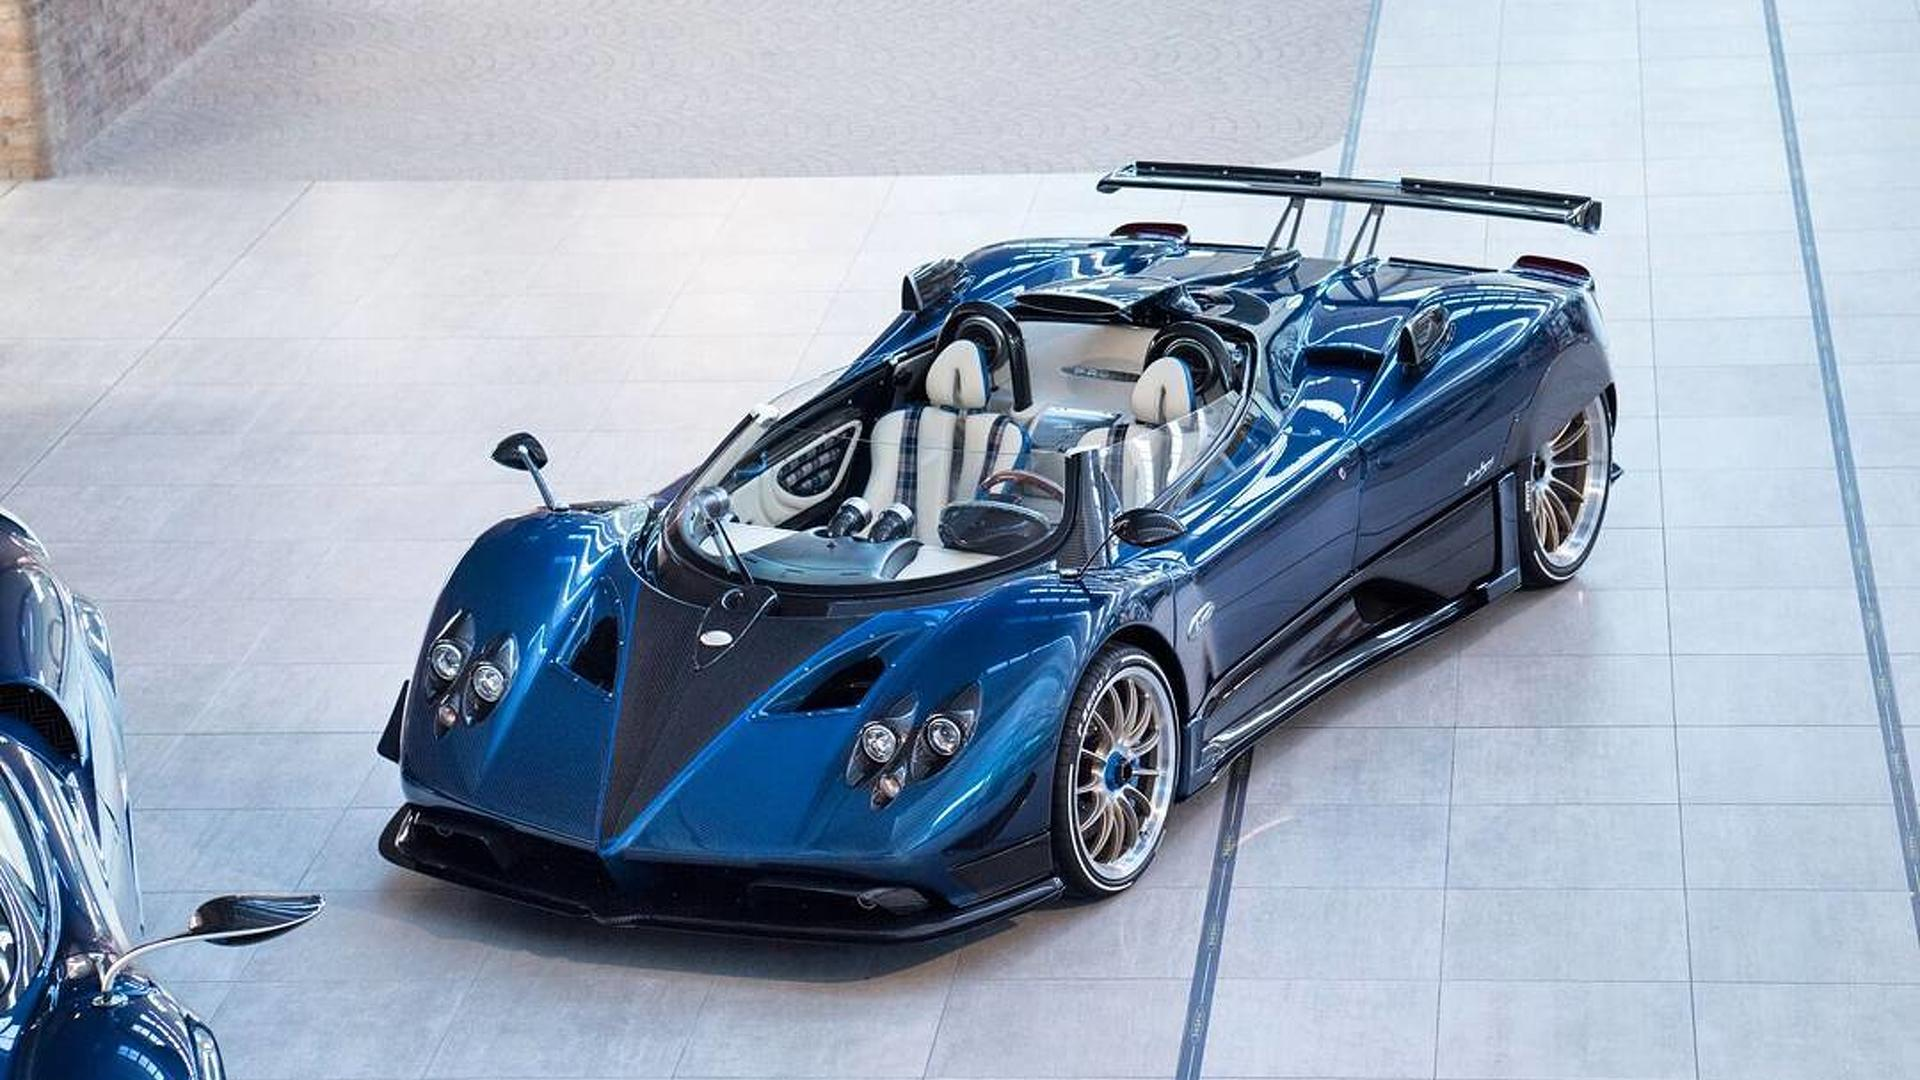 2017 Pagani Zonda Hp Barchetta Top Speed